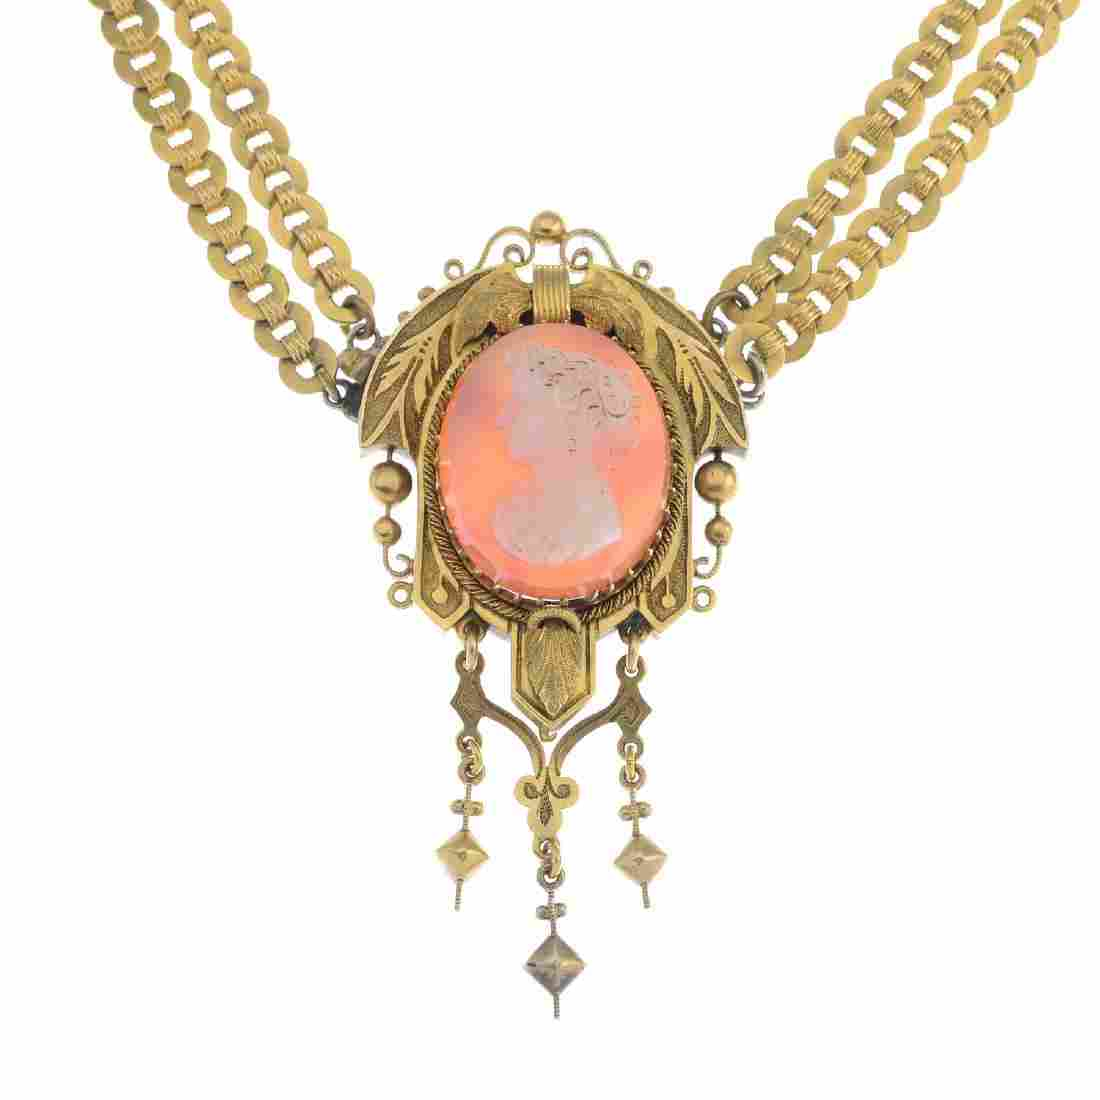 A late Victorian gold hardstone cameo necklace. The